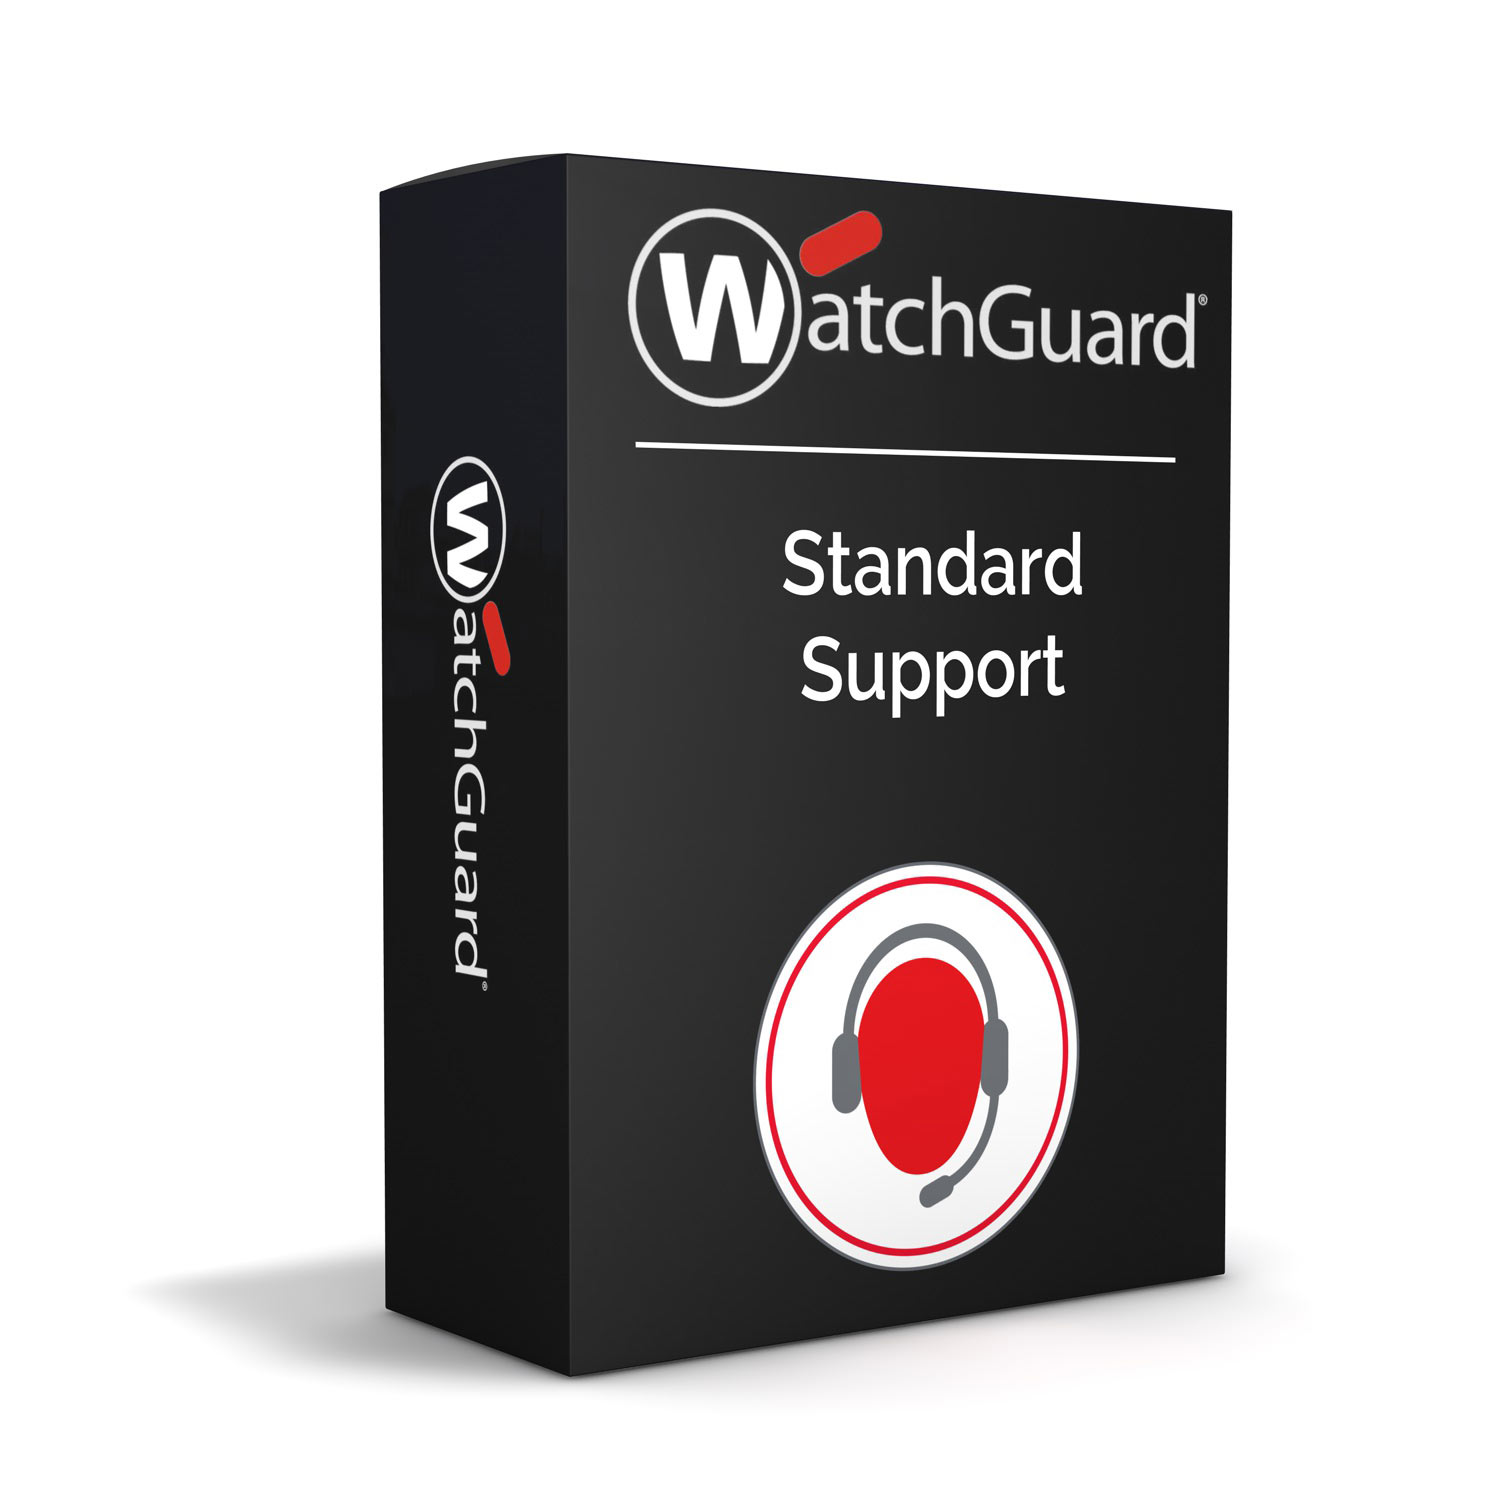 WatchGuard Standard Support Renewal 1-yr for FireboxV Small